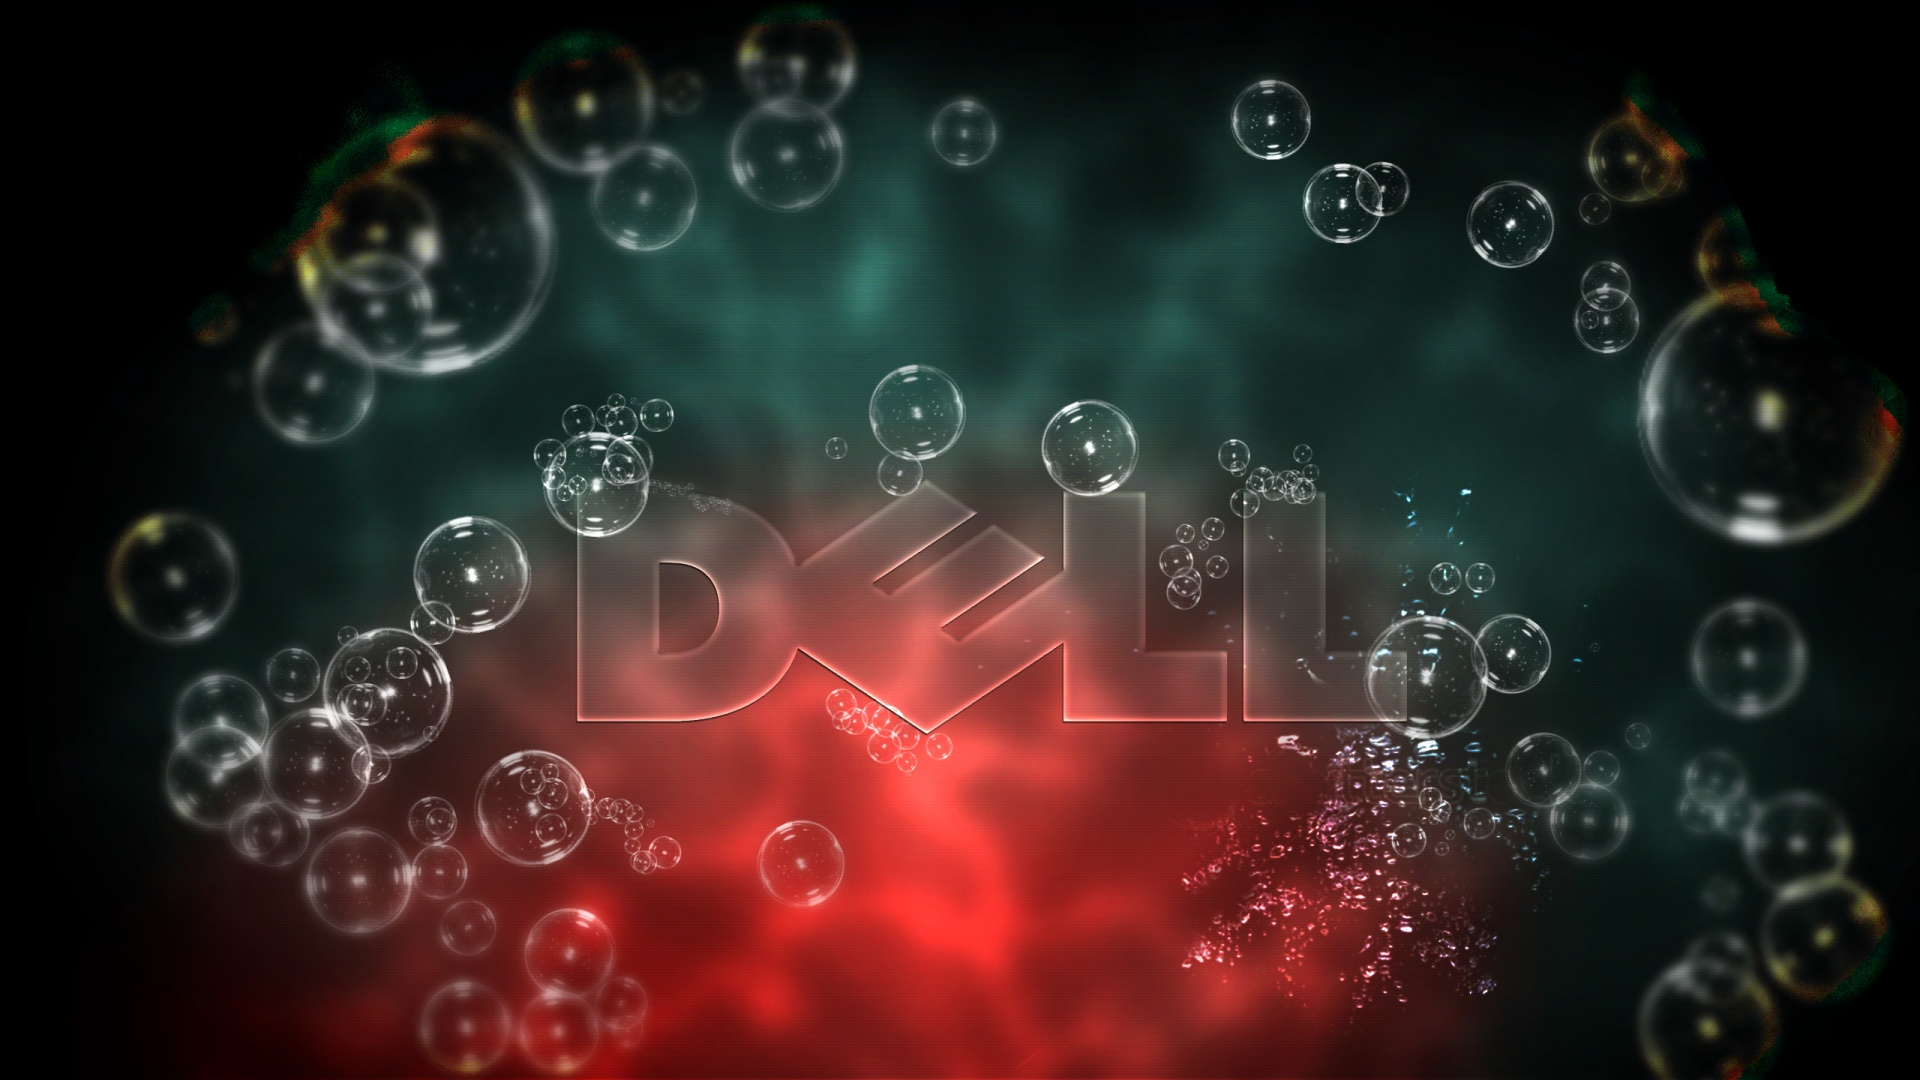 hd wallpapers for dell laptop,text,black,water,red,green